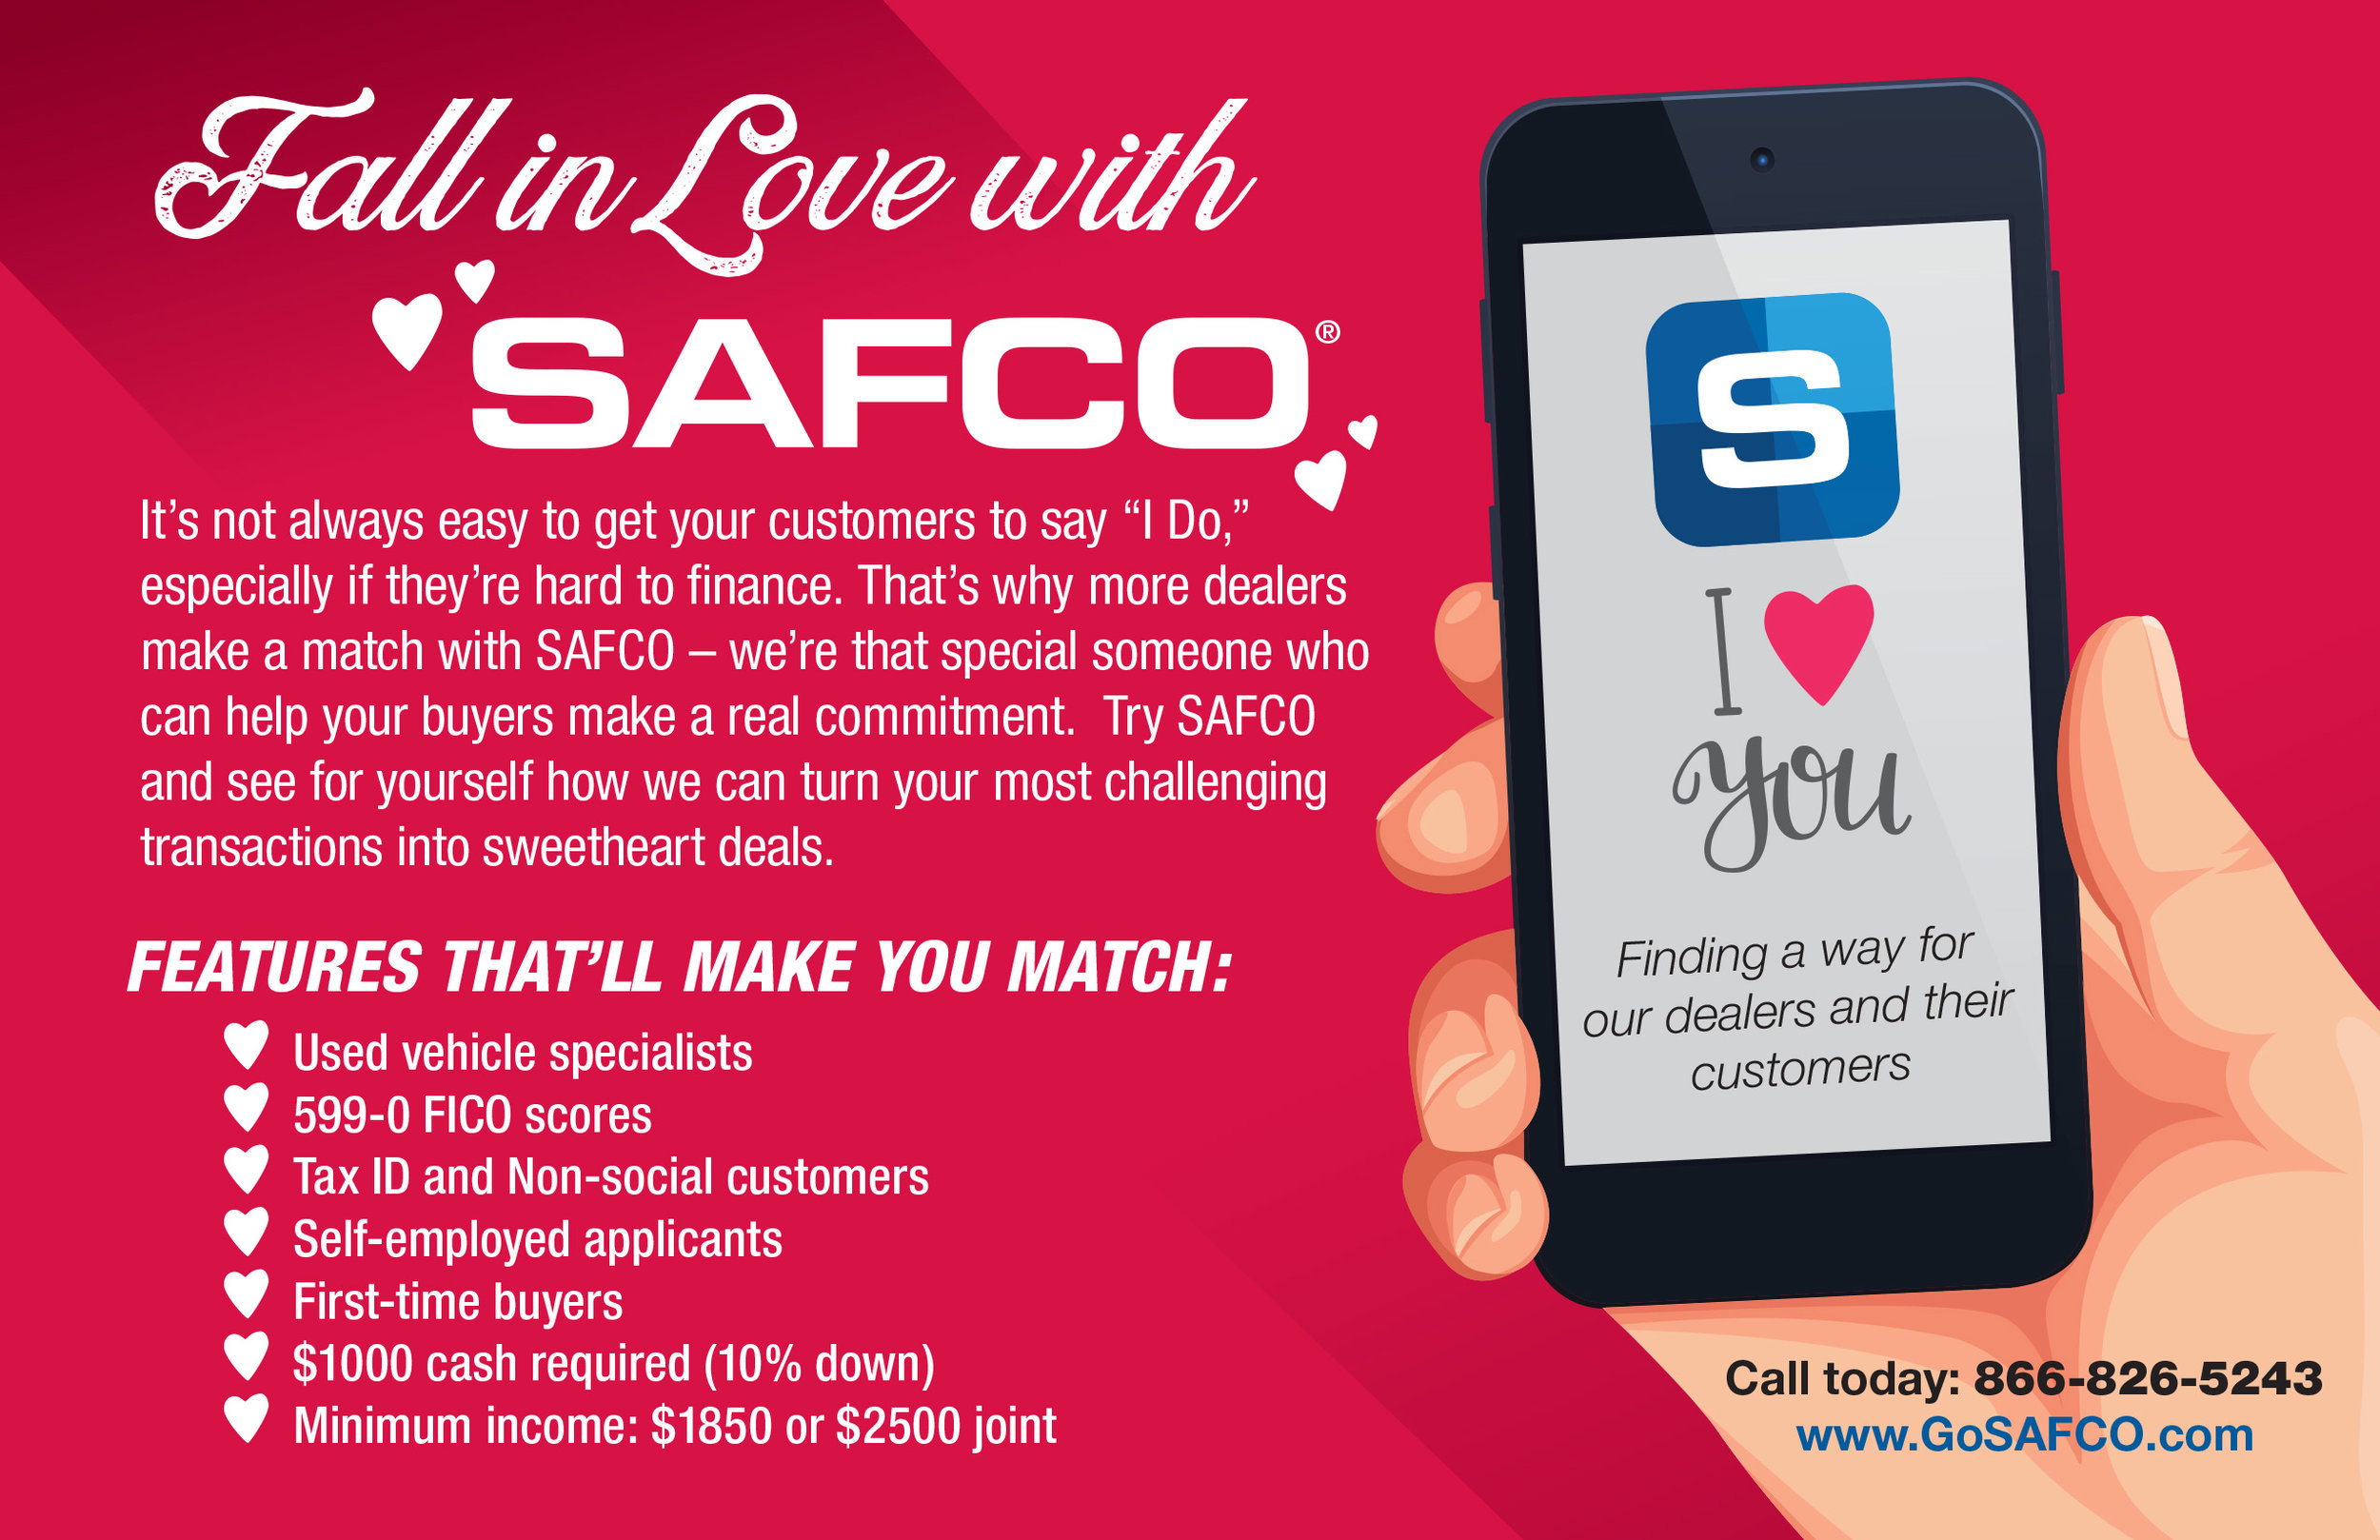 Client: SAFCO